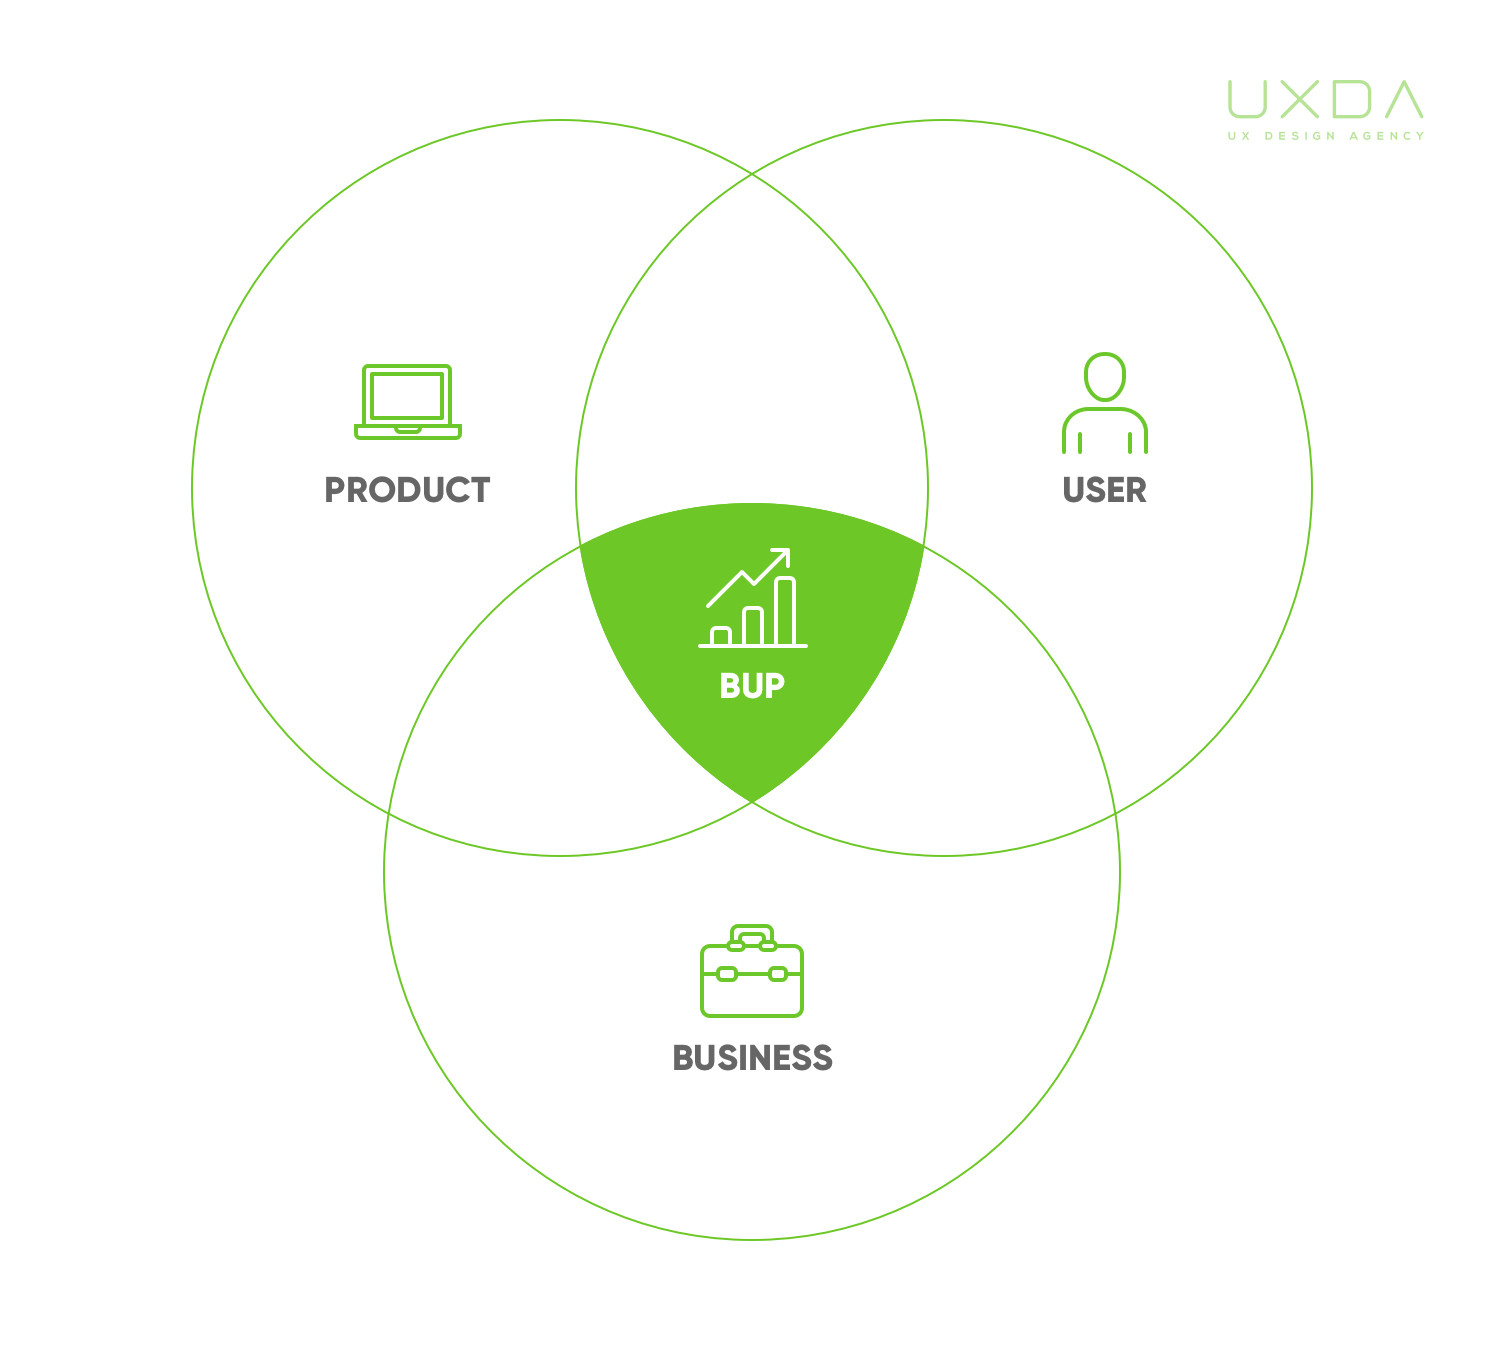 ux-design-for-fintech-uxda-work-process-bup-business-user-product-S.jpg